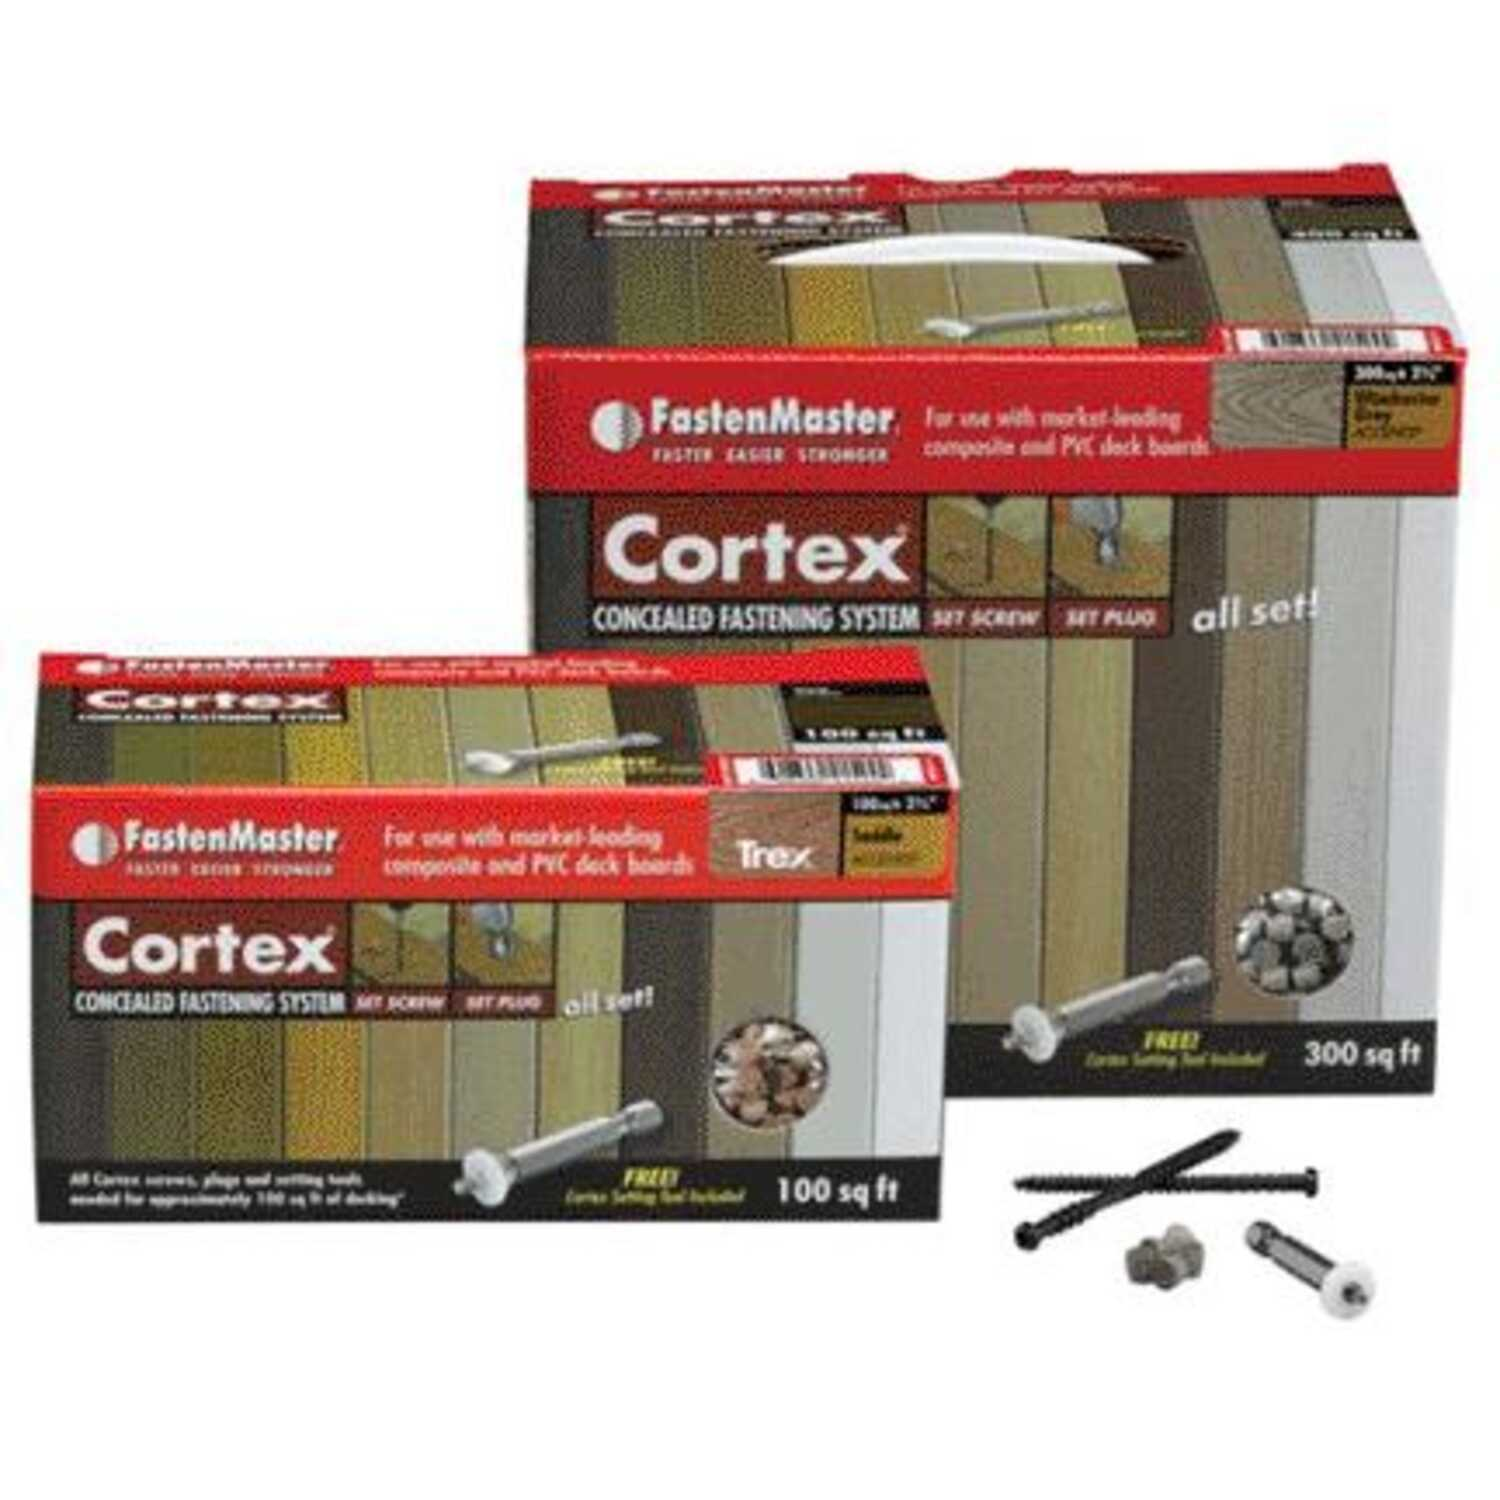 FastenMaster  Cortex  2-3/4 in. L Torx TTAP  Star Head Brownstone  Stainless Steel  Hidden Deck Fast